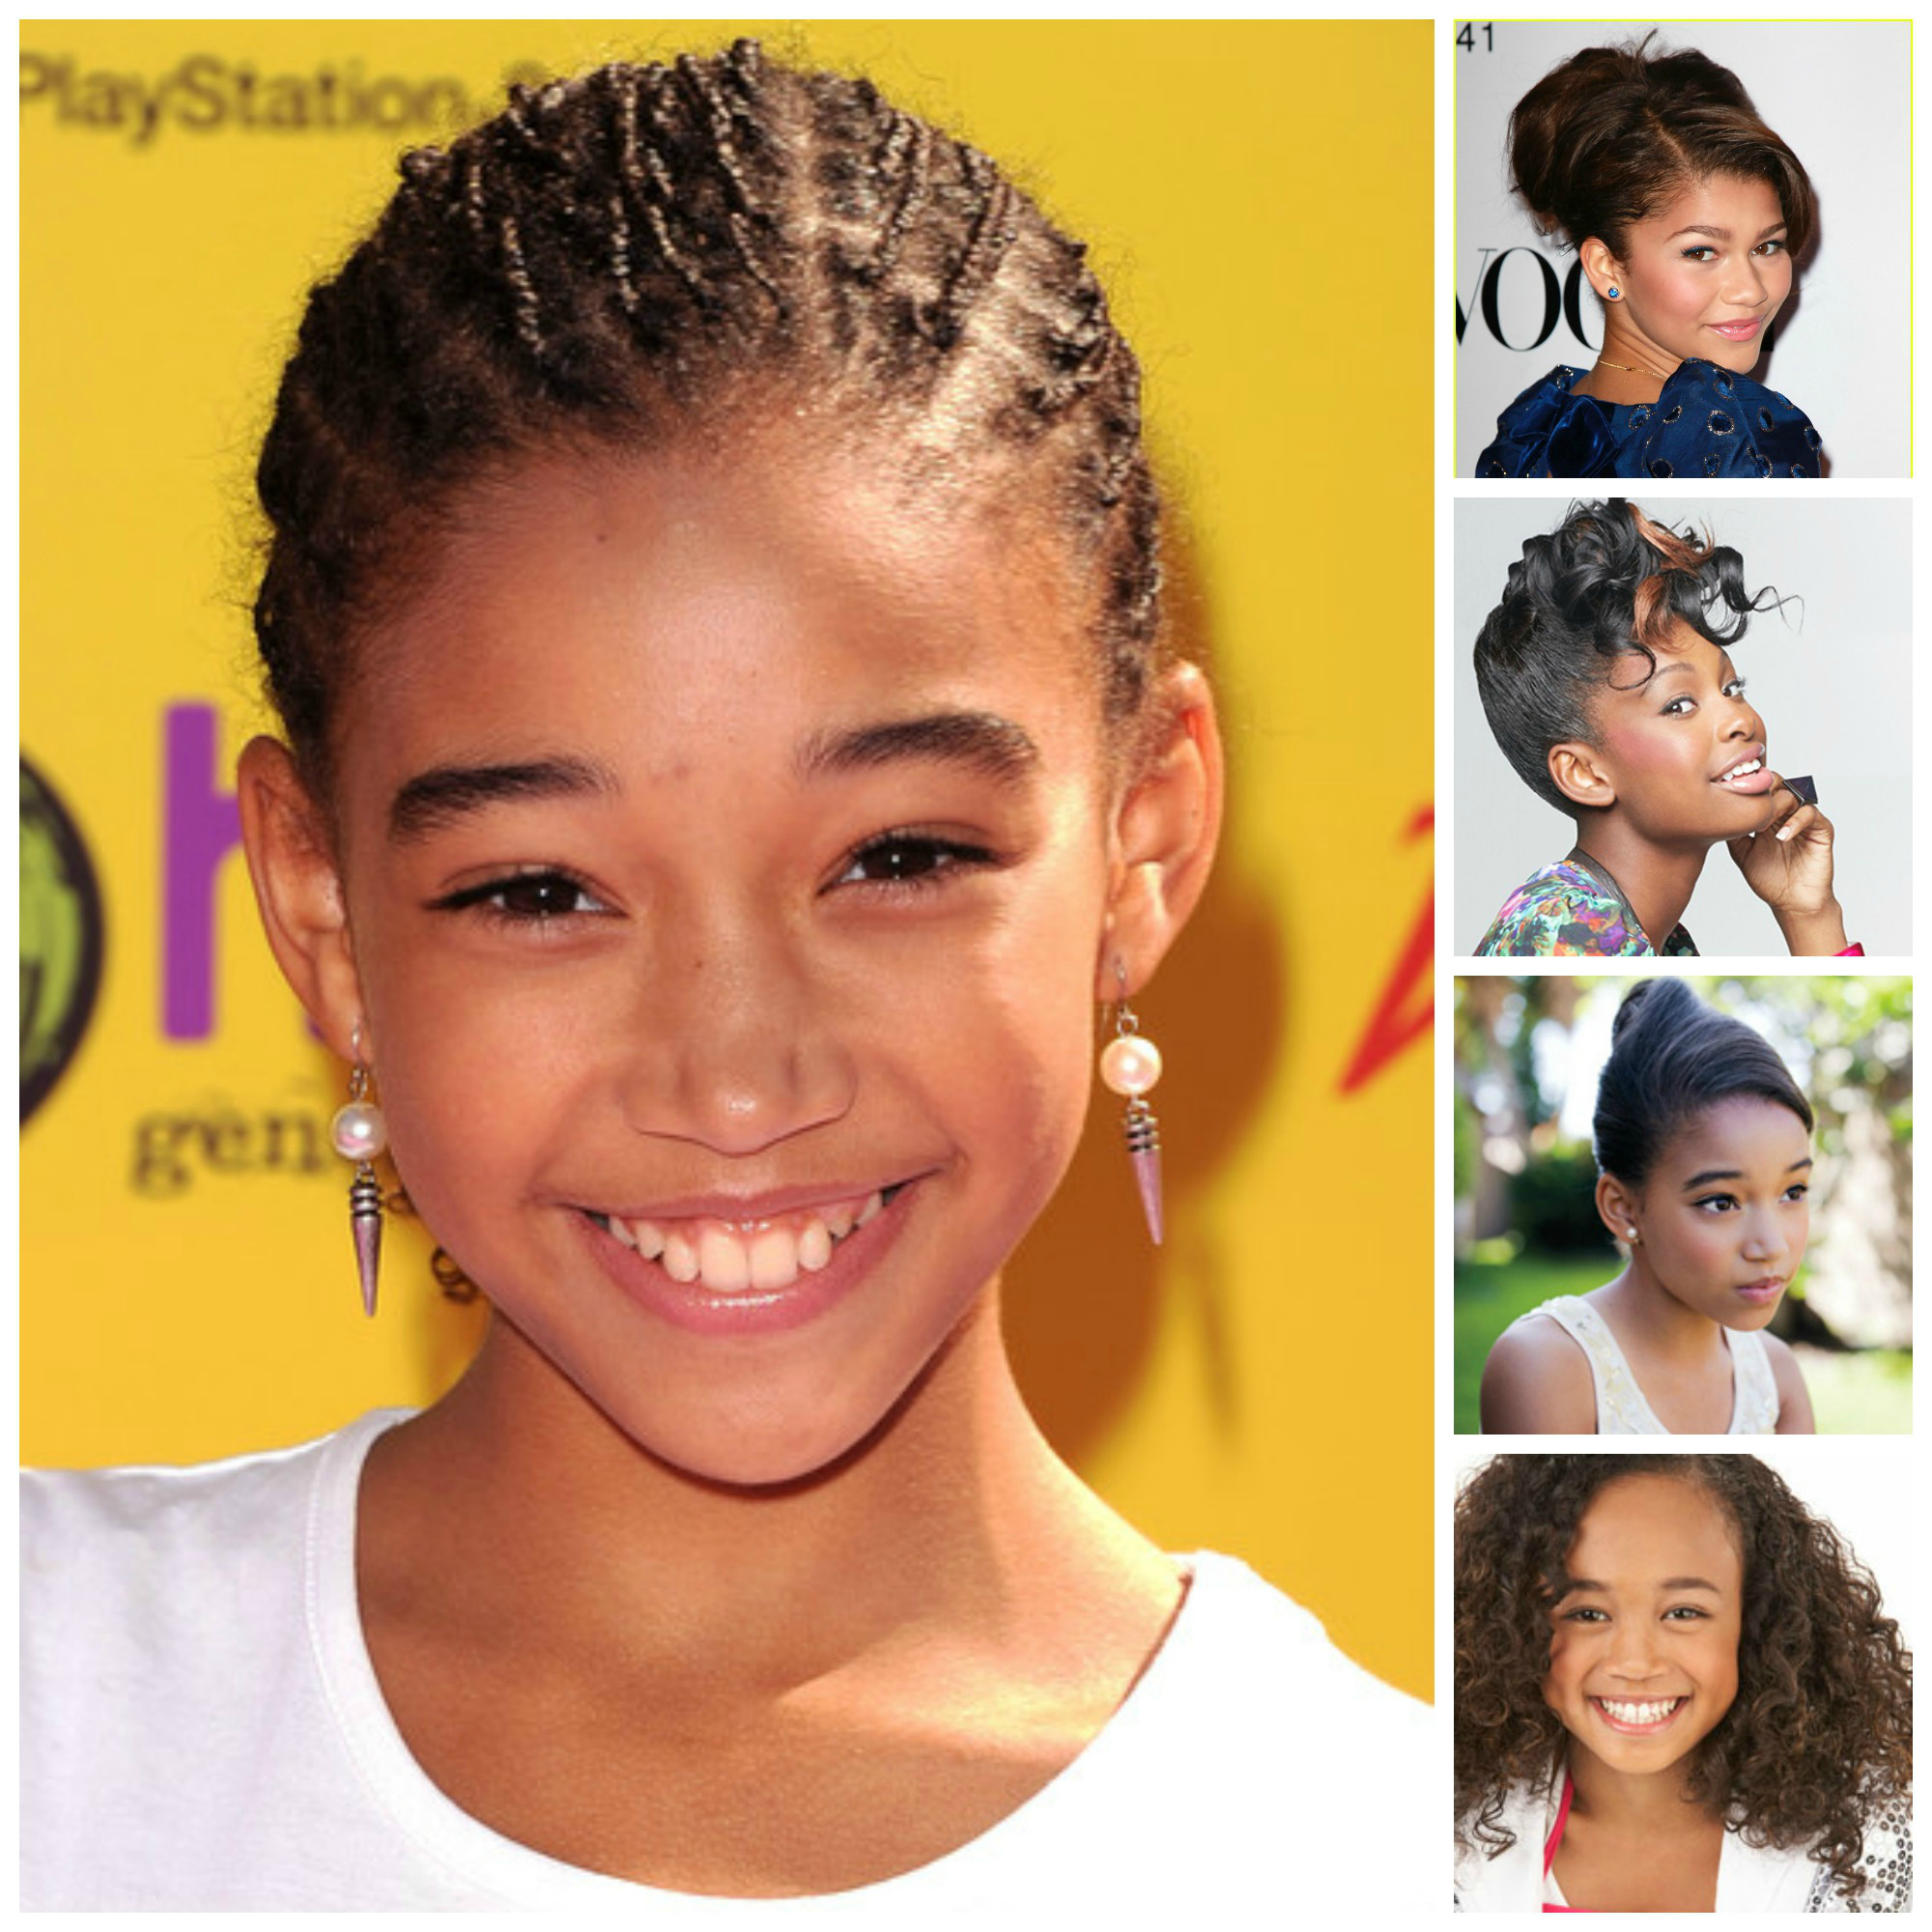 Super Back To School Hairstyle Ideas For Kids And Teens My Curls Short Hairstyles Gunalazisus